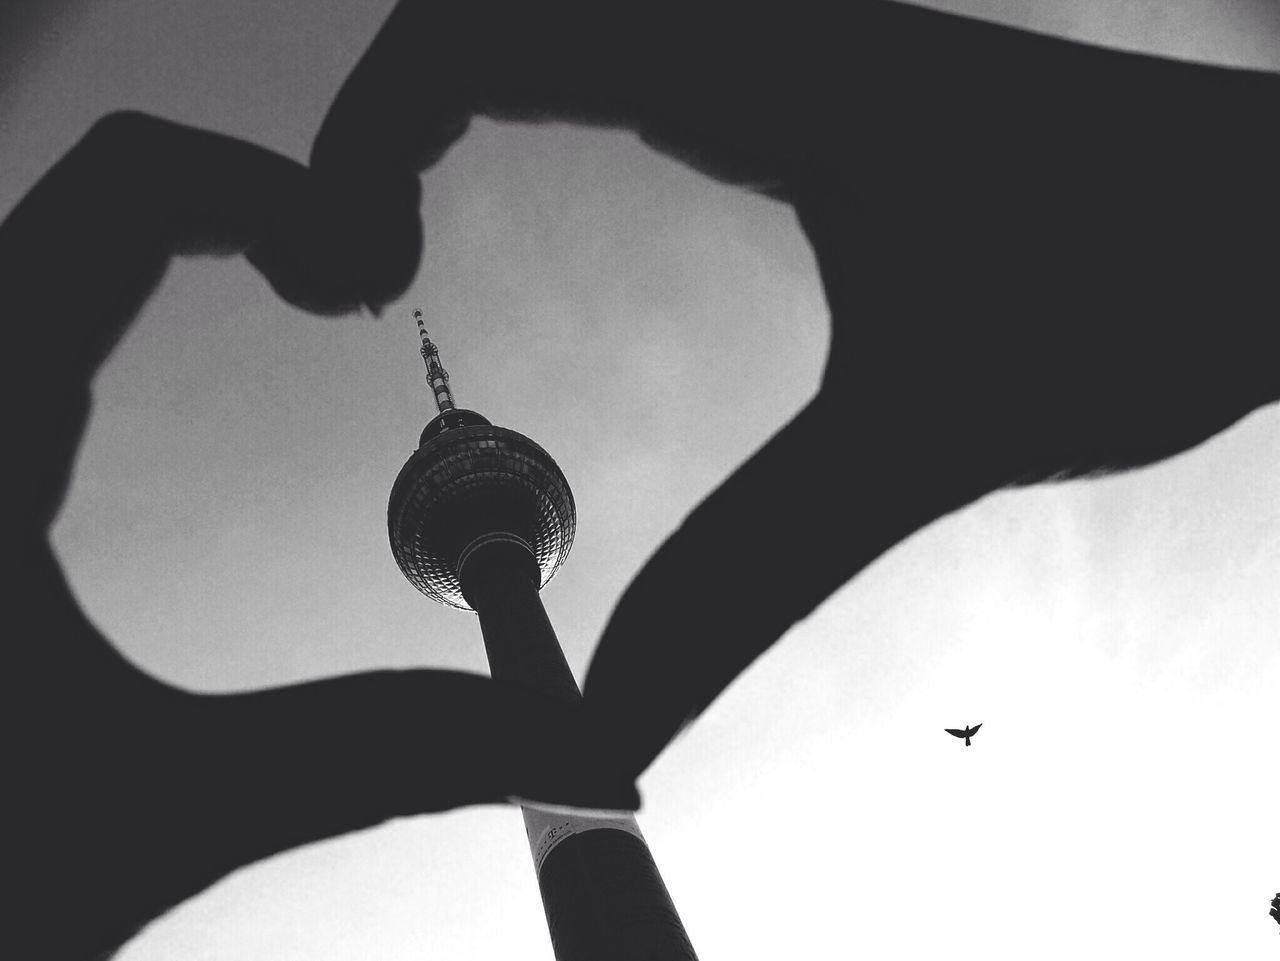 Silhouette hands forming heart shape against tower